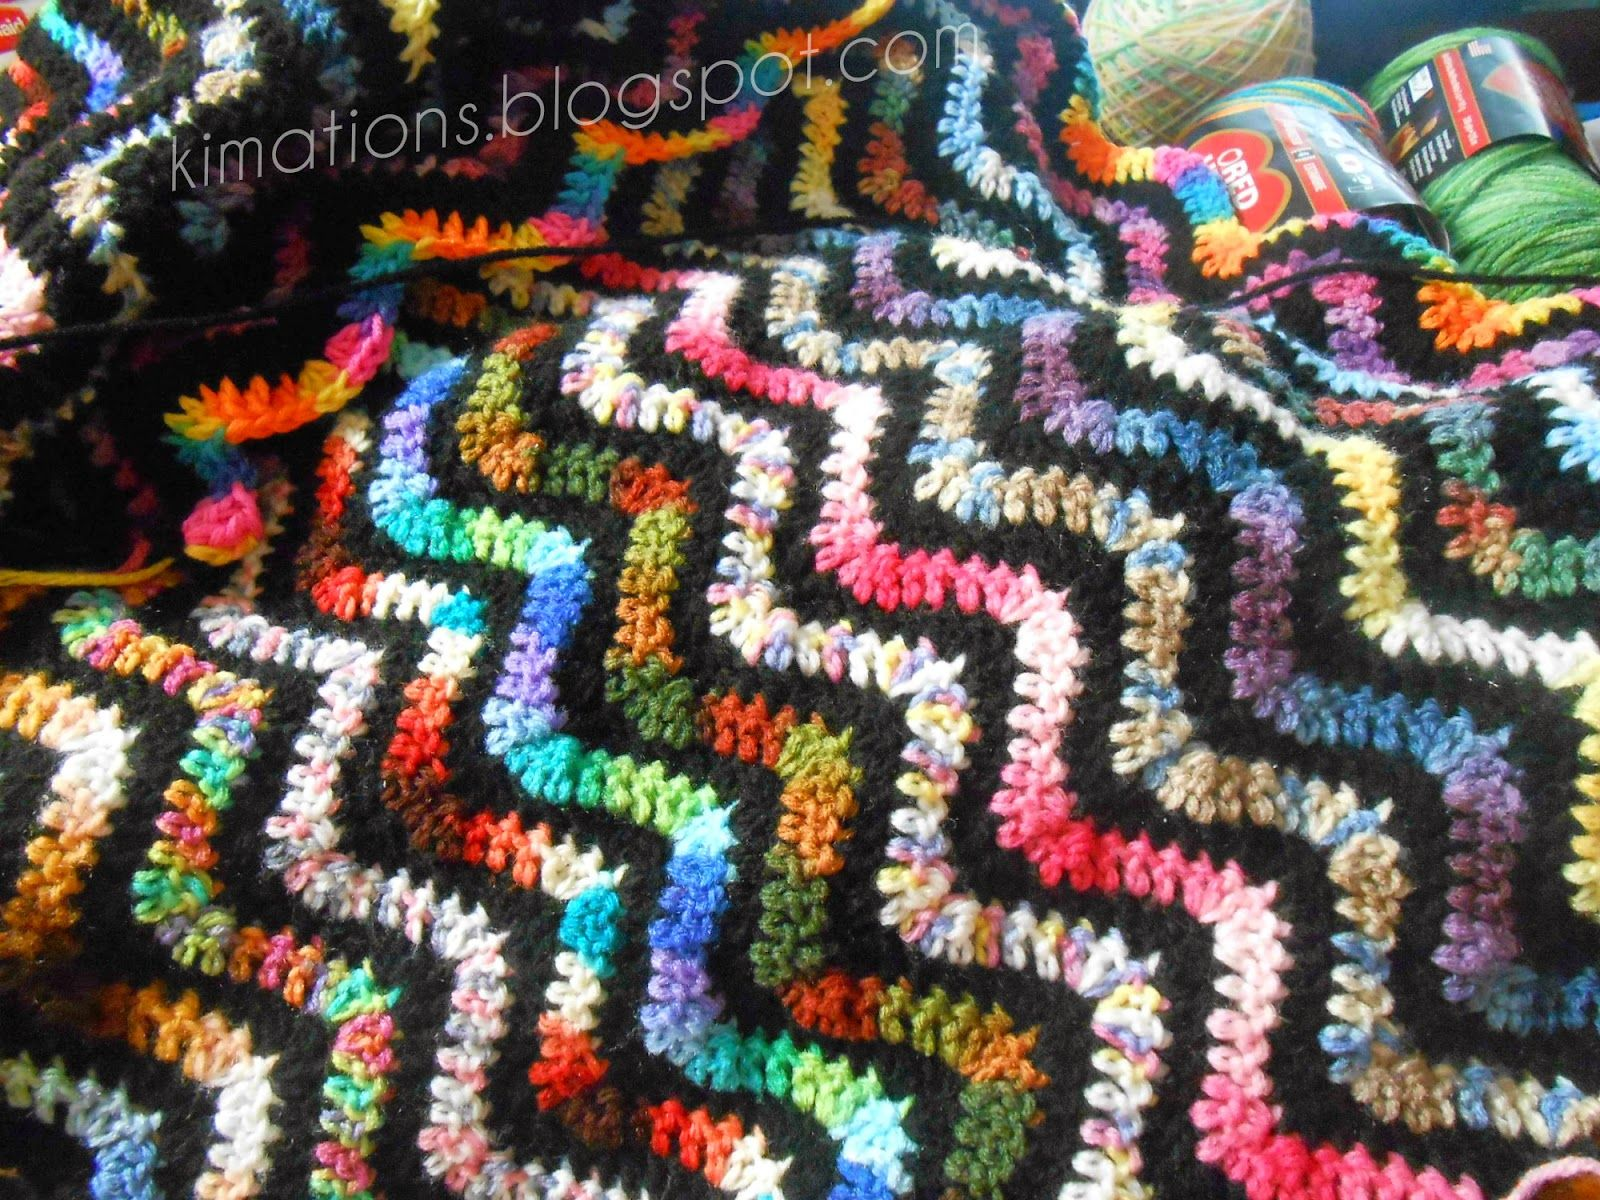 Kimations: Variegated Variegated Crochet Ripple Afghan - includes ...